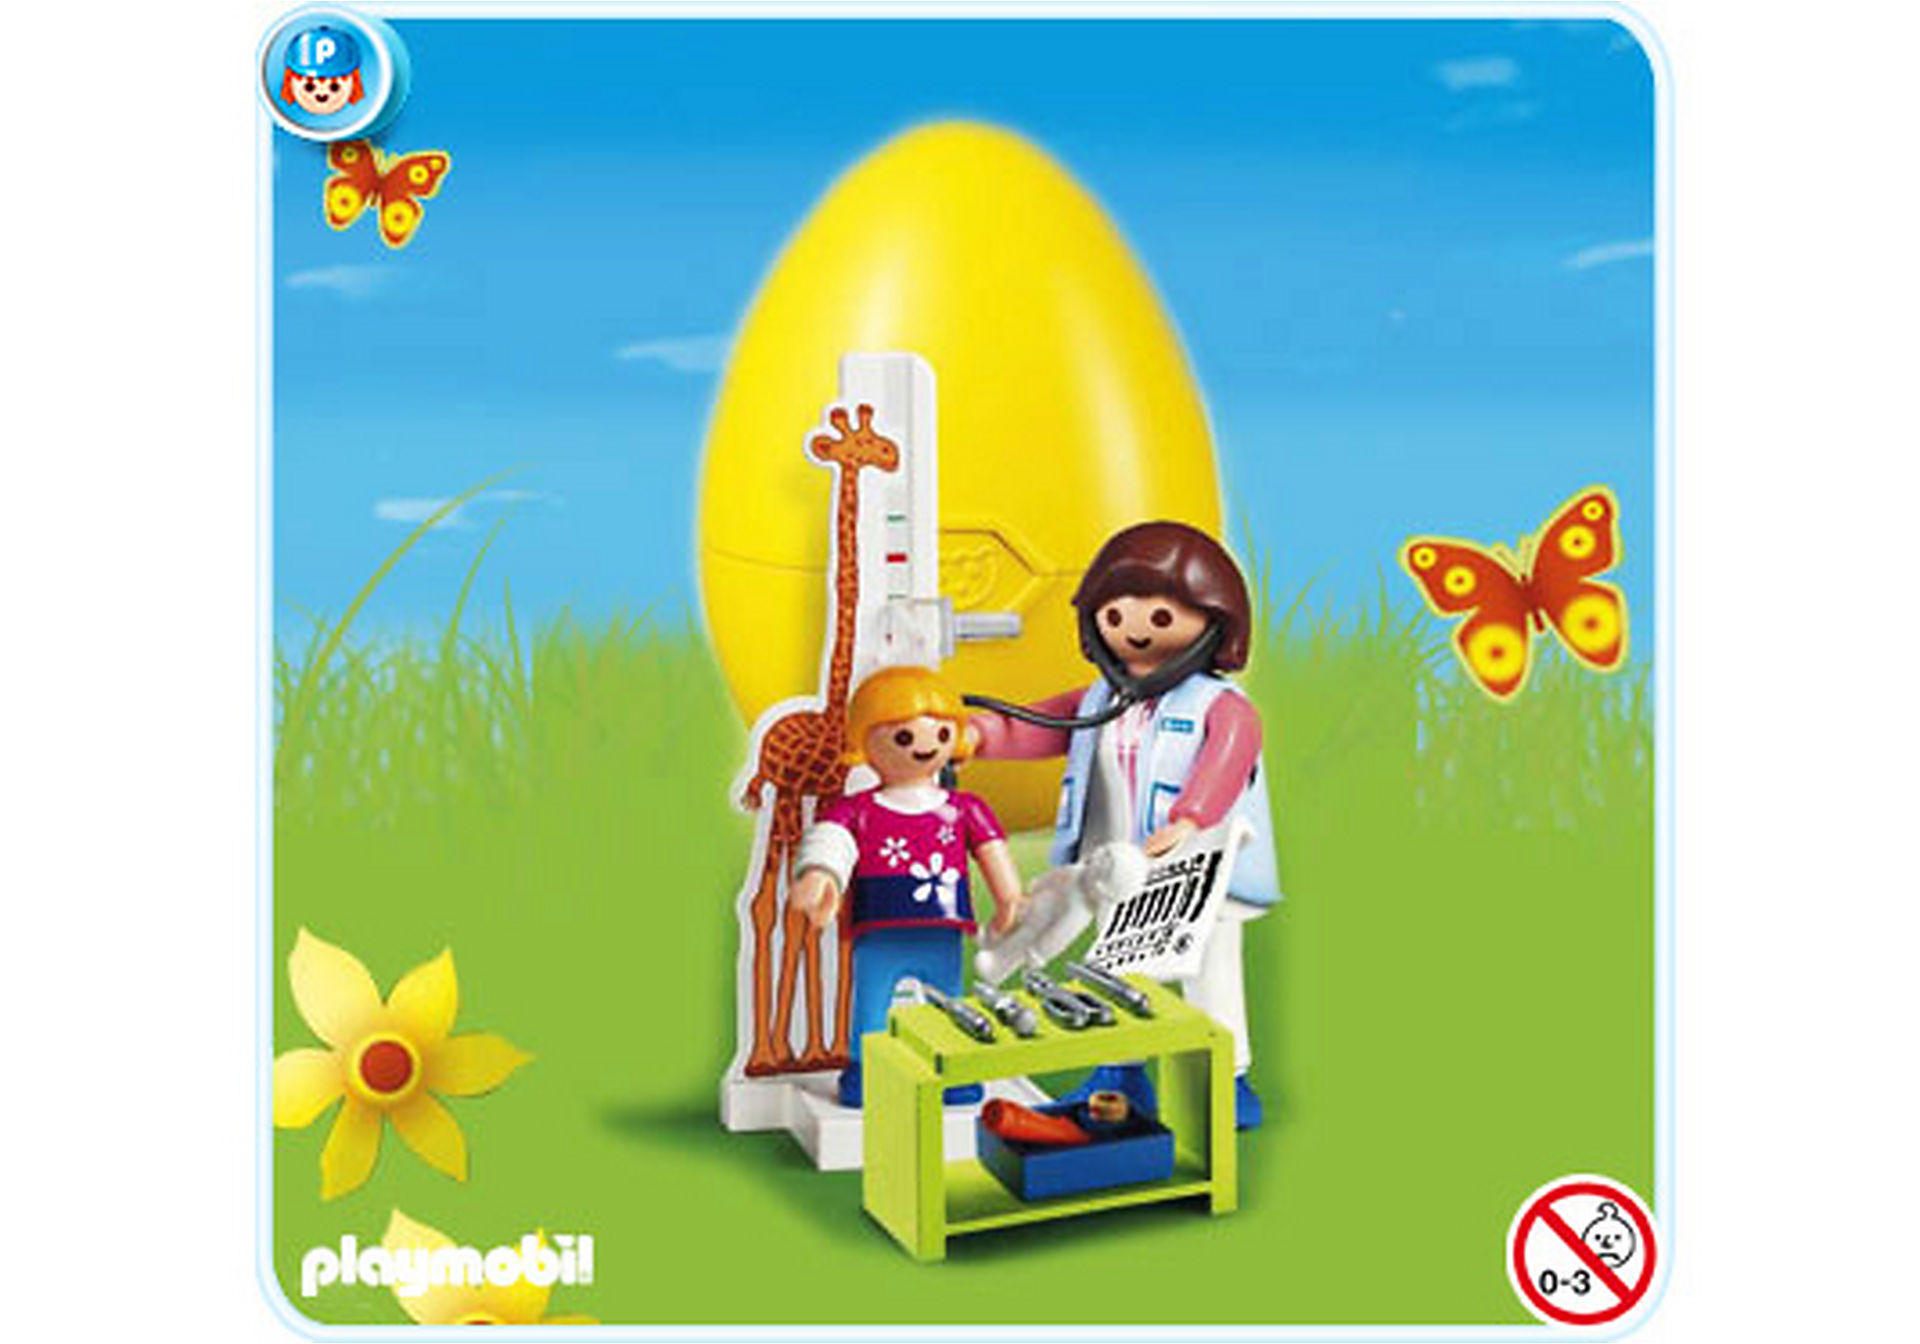 http://media.playmobil.com/i/playmobil/4921-A_product_detail/Oeuf 2010 Pédiatre et enfant